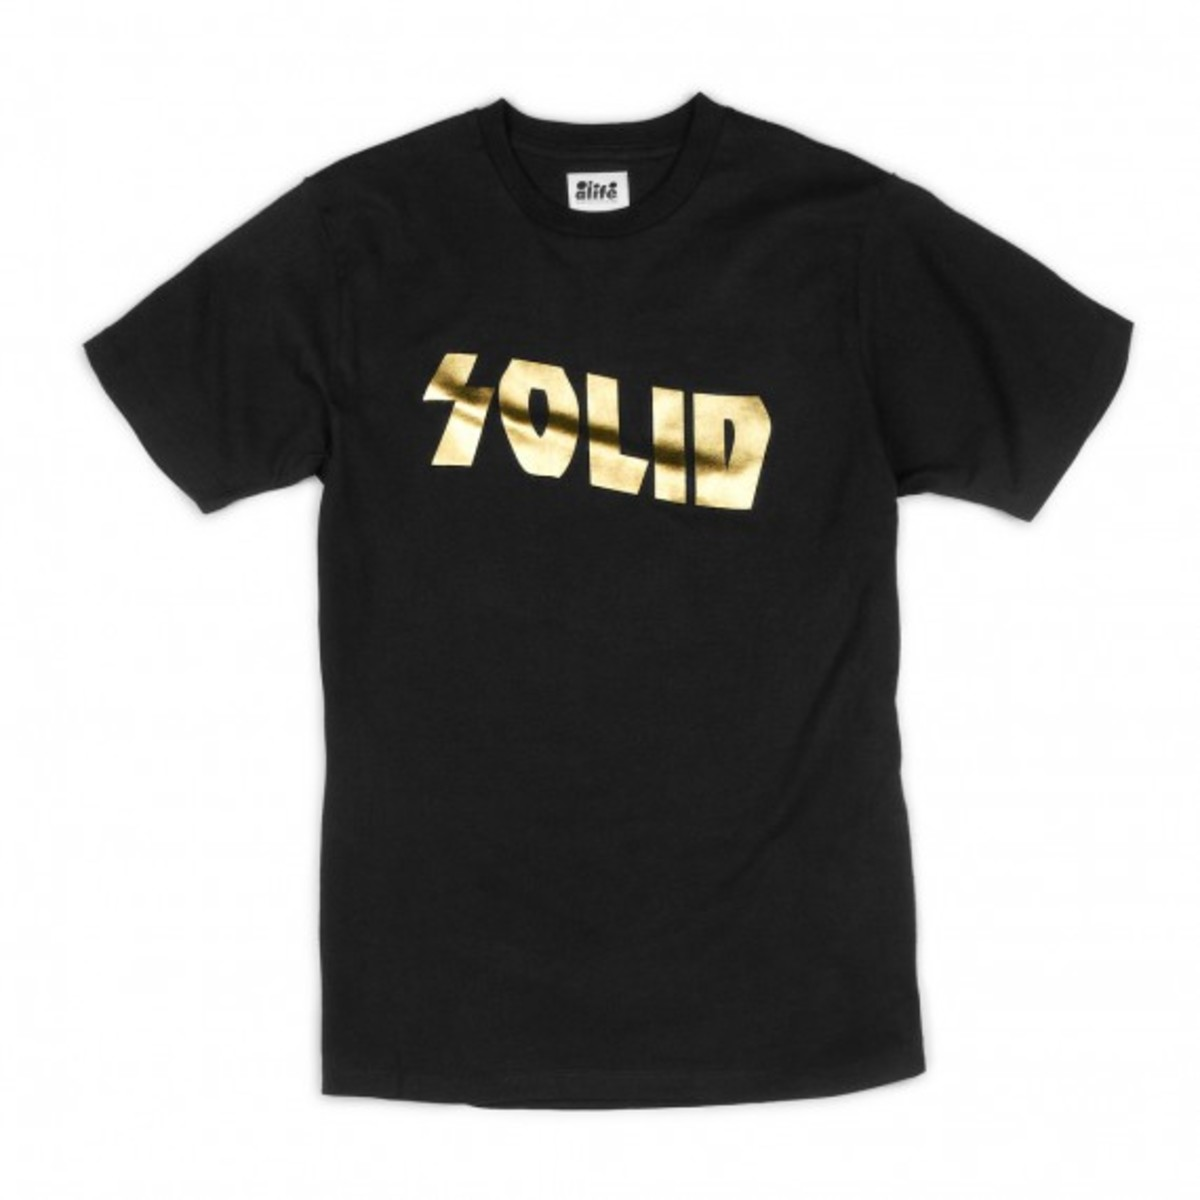 alife-tshirts-accessories-fall-2011-16